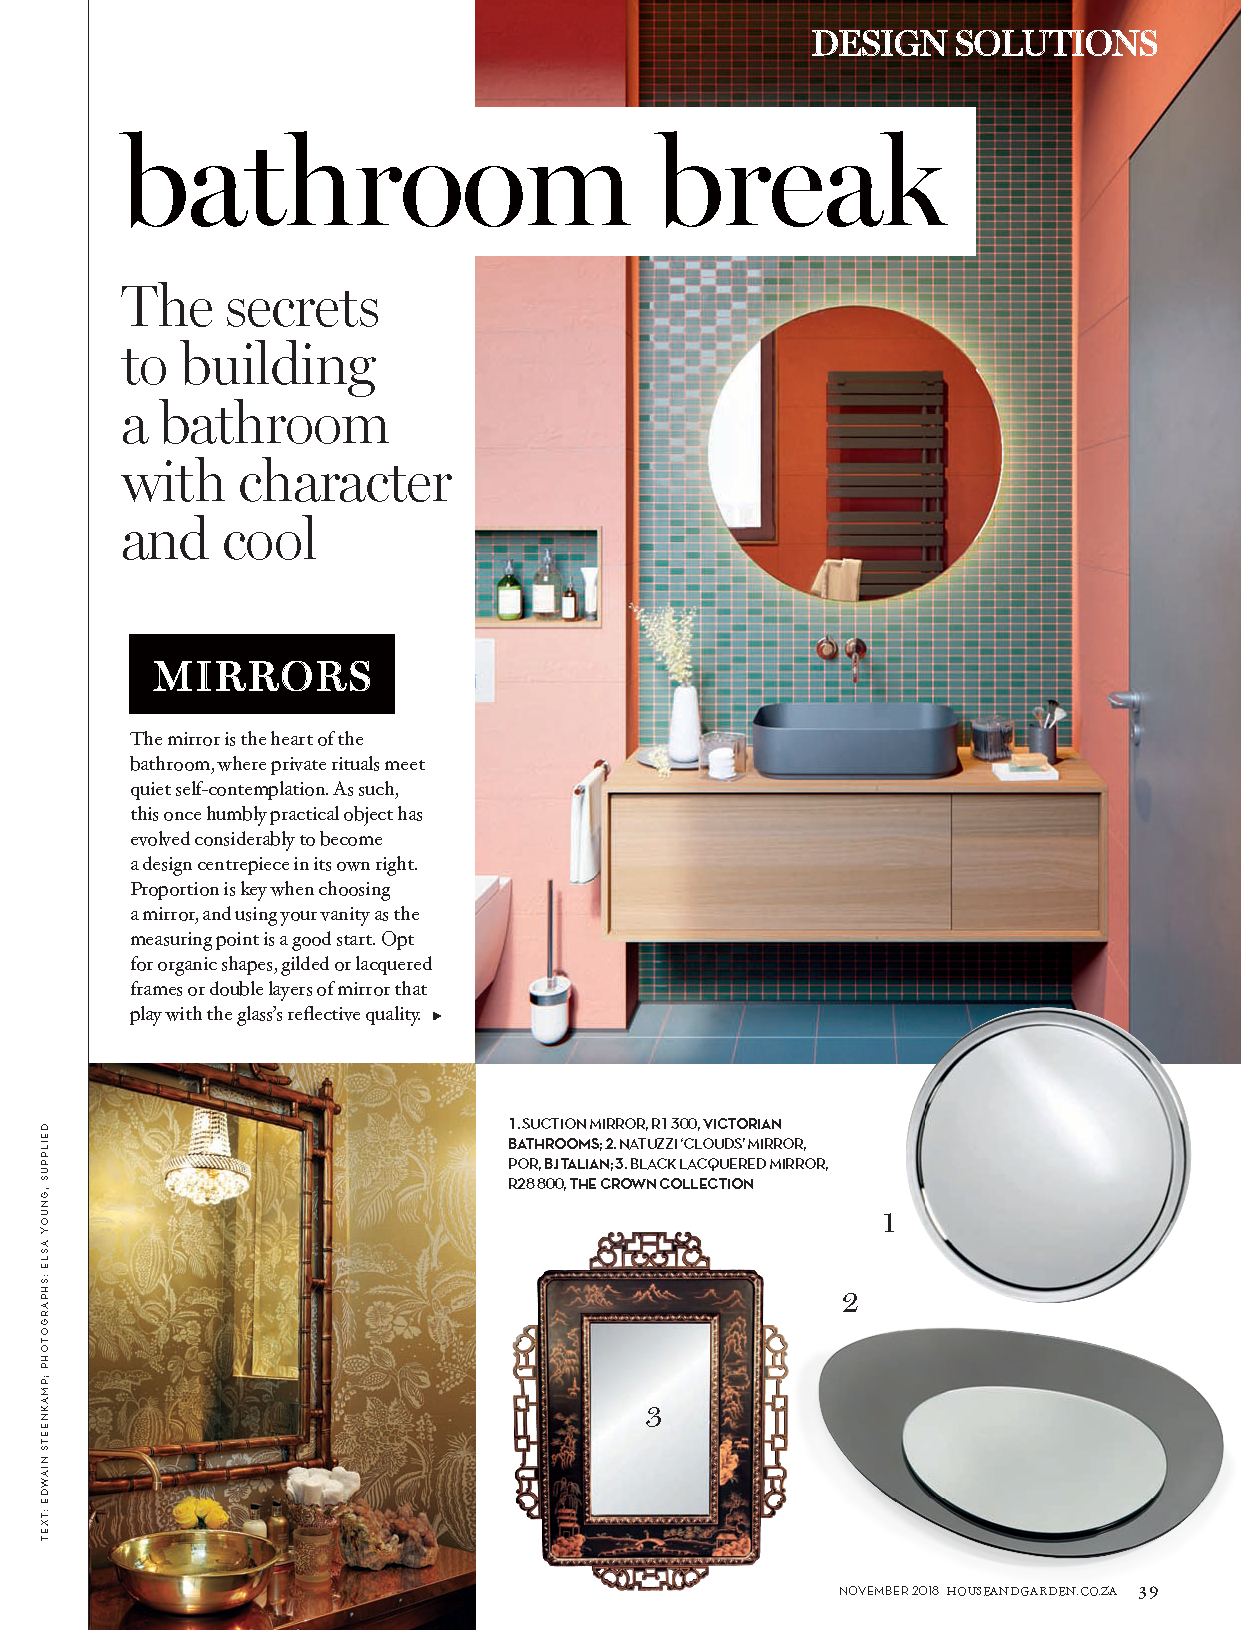 H&G Nov 18_DesignSolutions_Bathrooms_Page_1.png